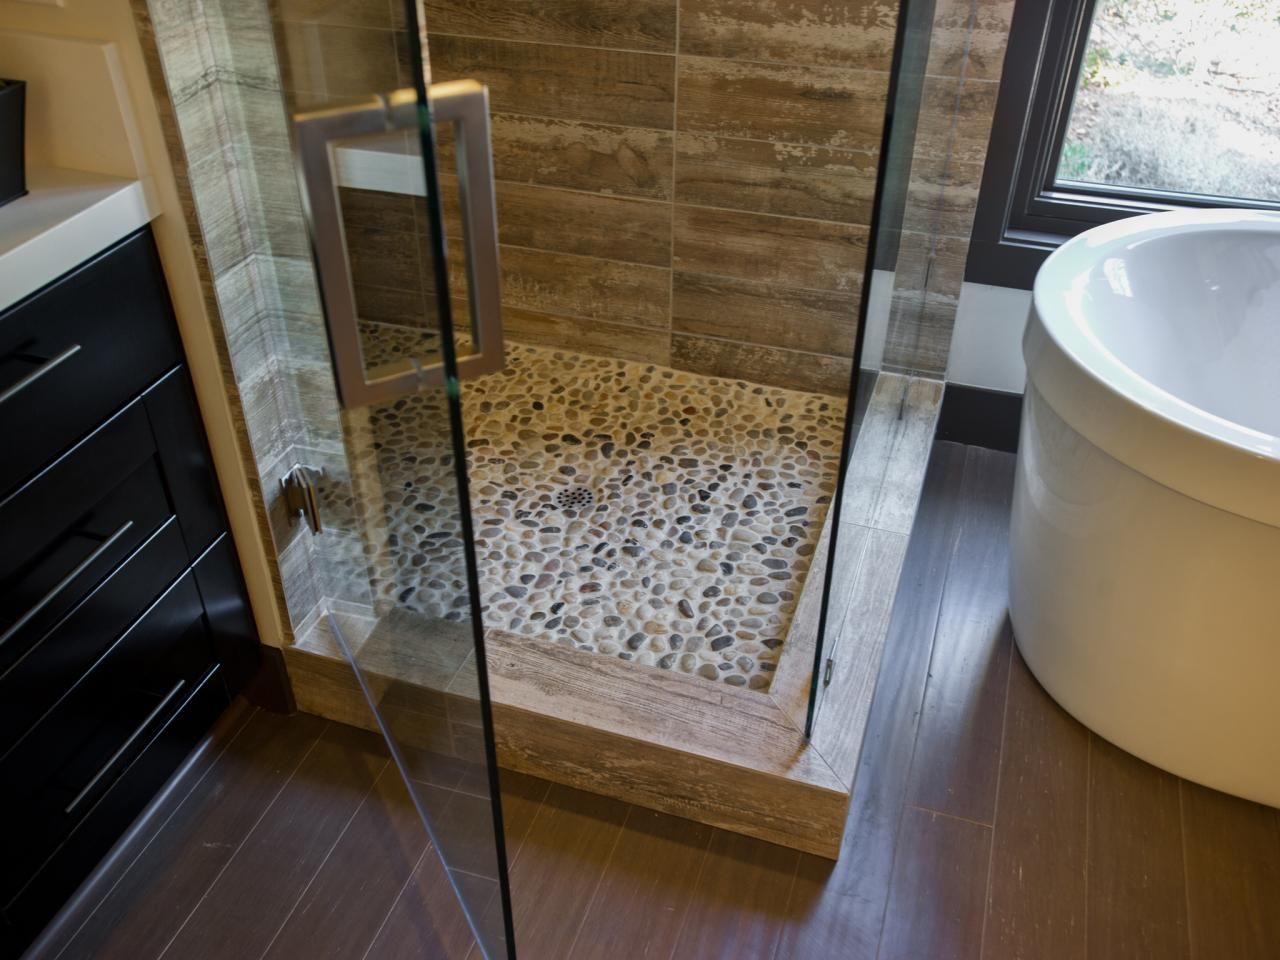 Dream home 2014 master bathroom pebble tiles grout and neutral dream home 2014 master bathroom dailygadgetfo Images